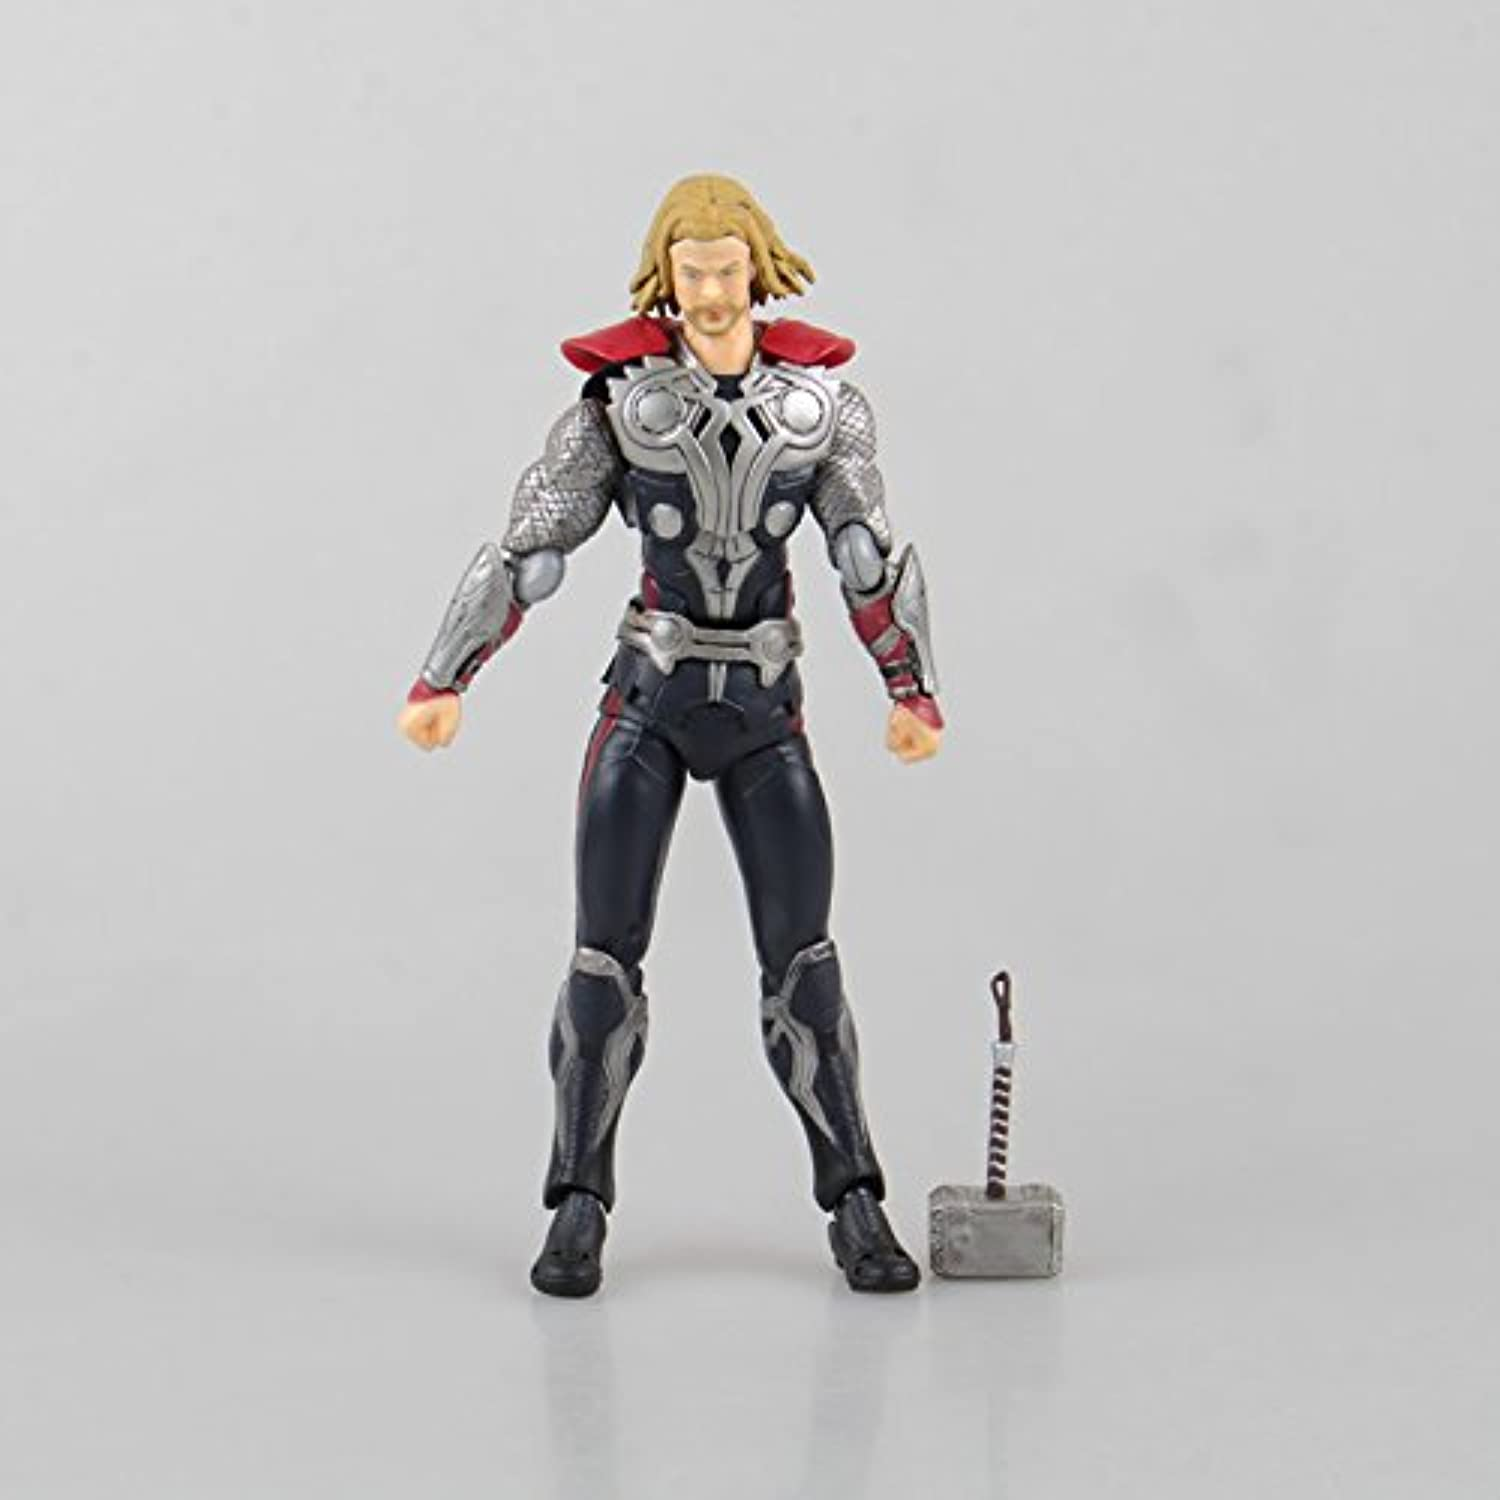 Avengers Thor Figma 216 Juguetes PVC Action Figure Thor Hammer Brinquedos Collectible Model Kids Toys Doll Figurine - Deadpool Action Figure - DBZ Action Figures